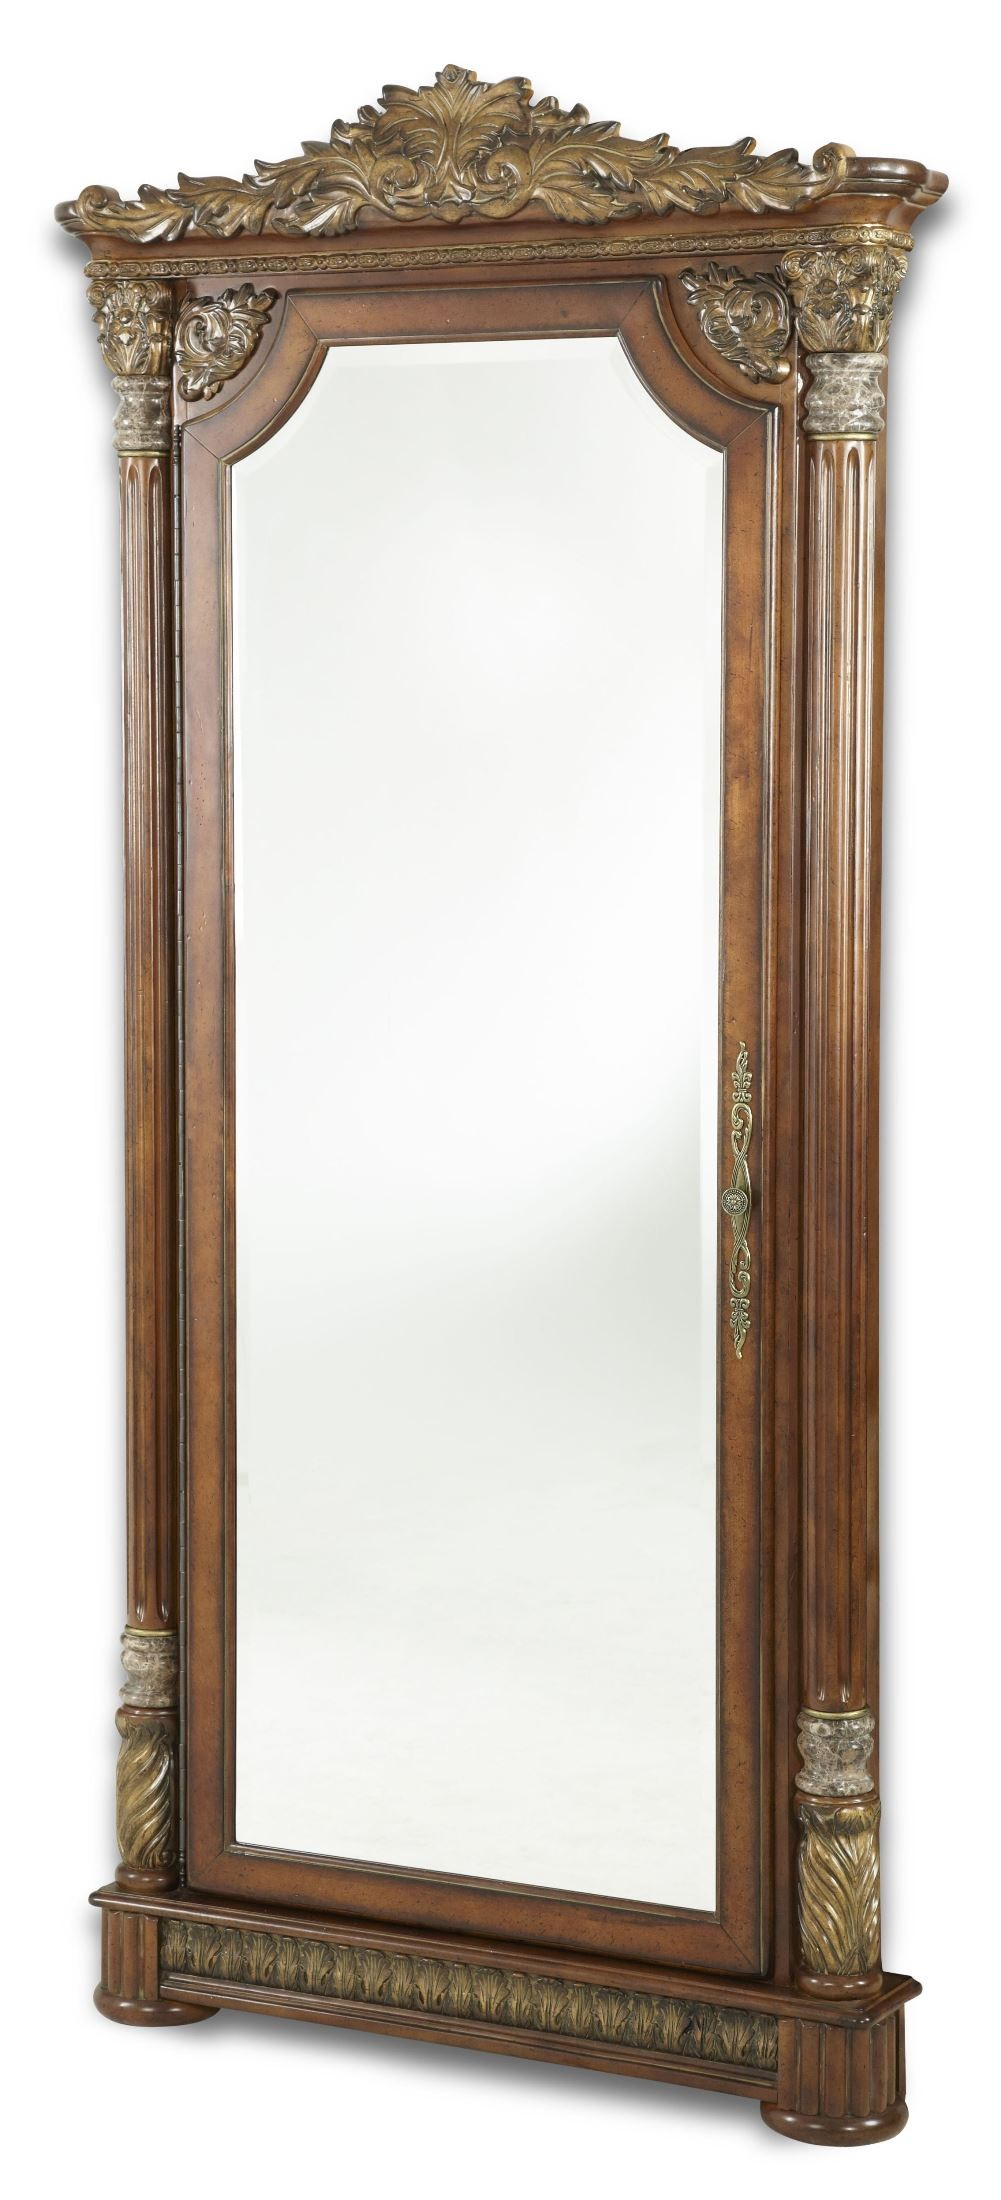 Valencia Carved Wood Traditional Bedroom Furniture Set 209000: Villa Valencia Accent Wall Mirror From Aico (72062-55